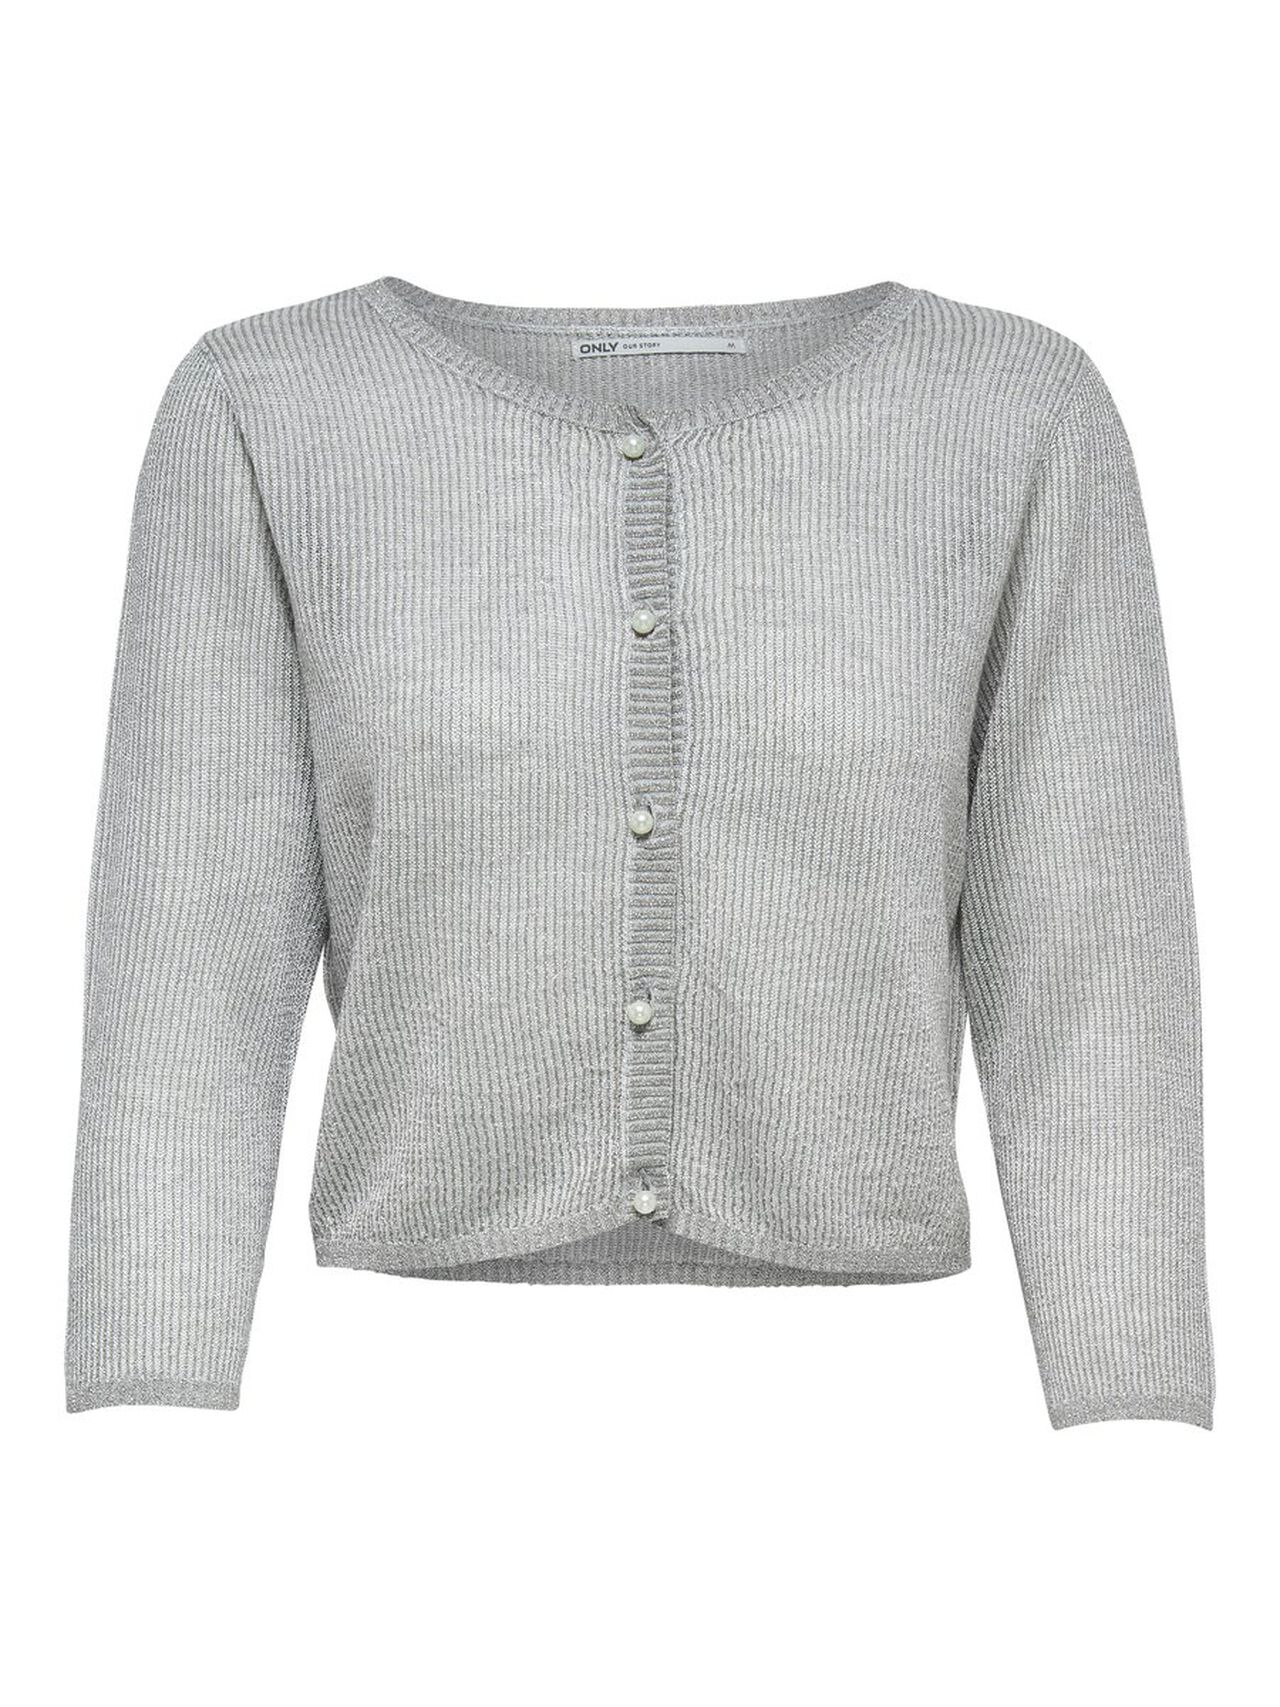 ONLY Short Knitted Bolero Women Grey